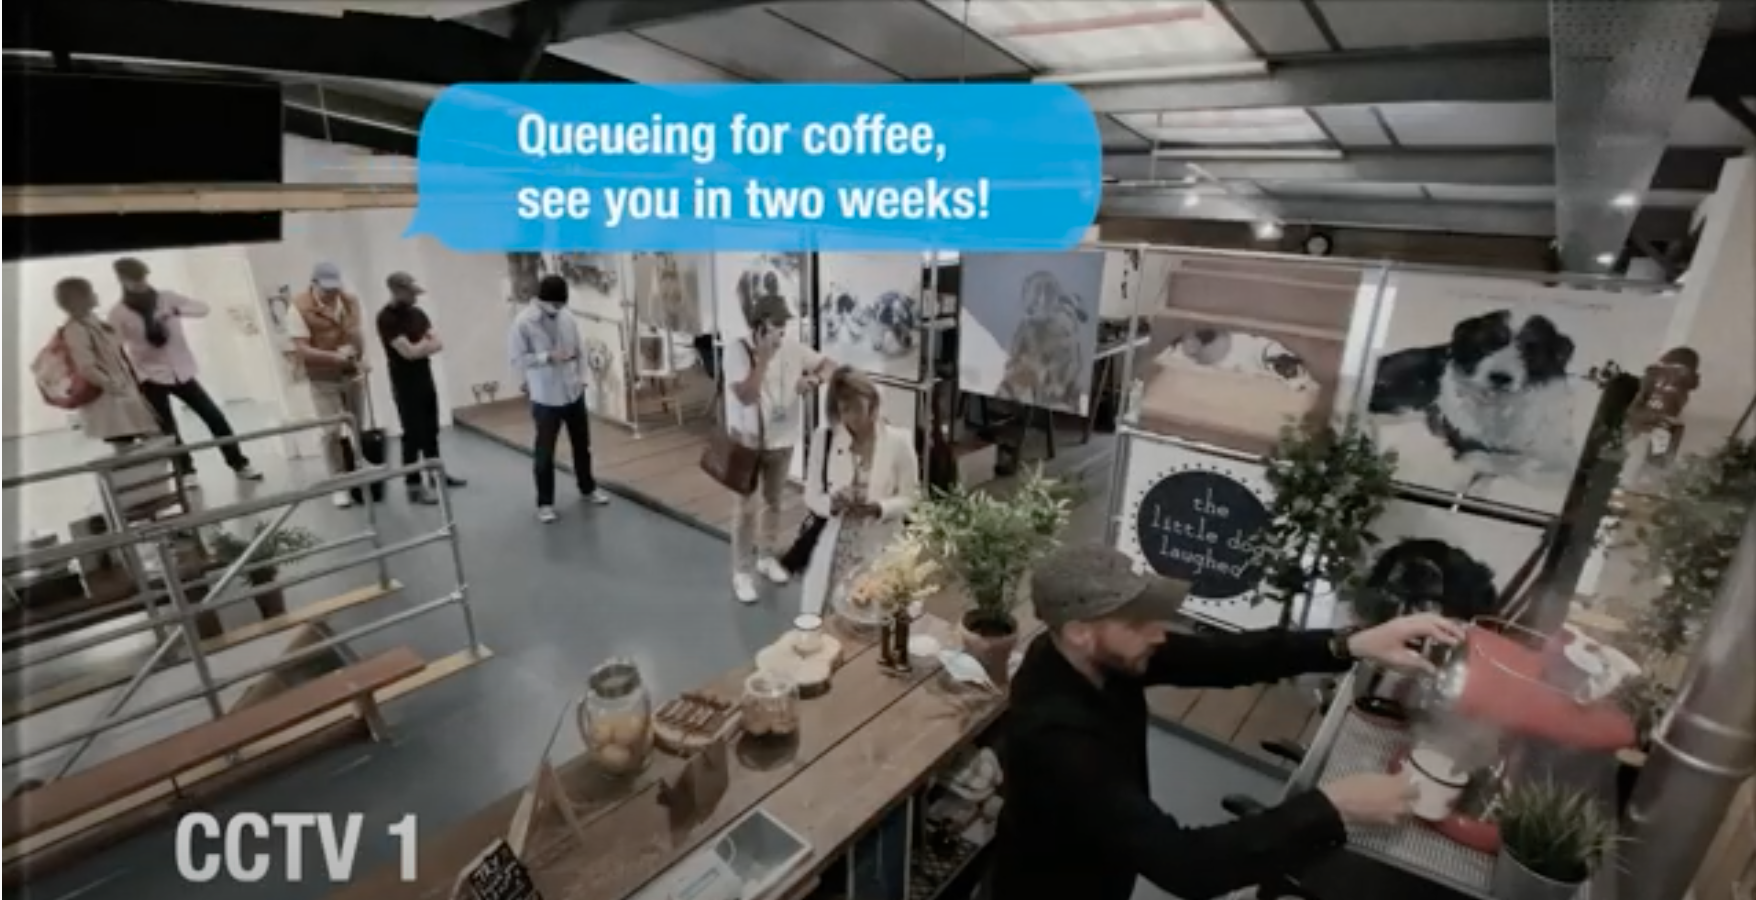 Above: Queuing for coffee is just part of a trade show, as everyone knows!